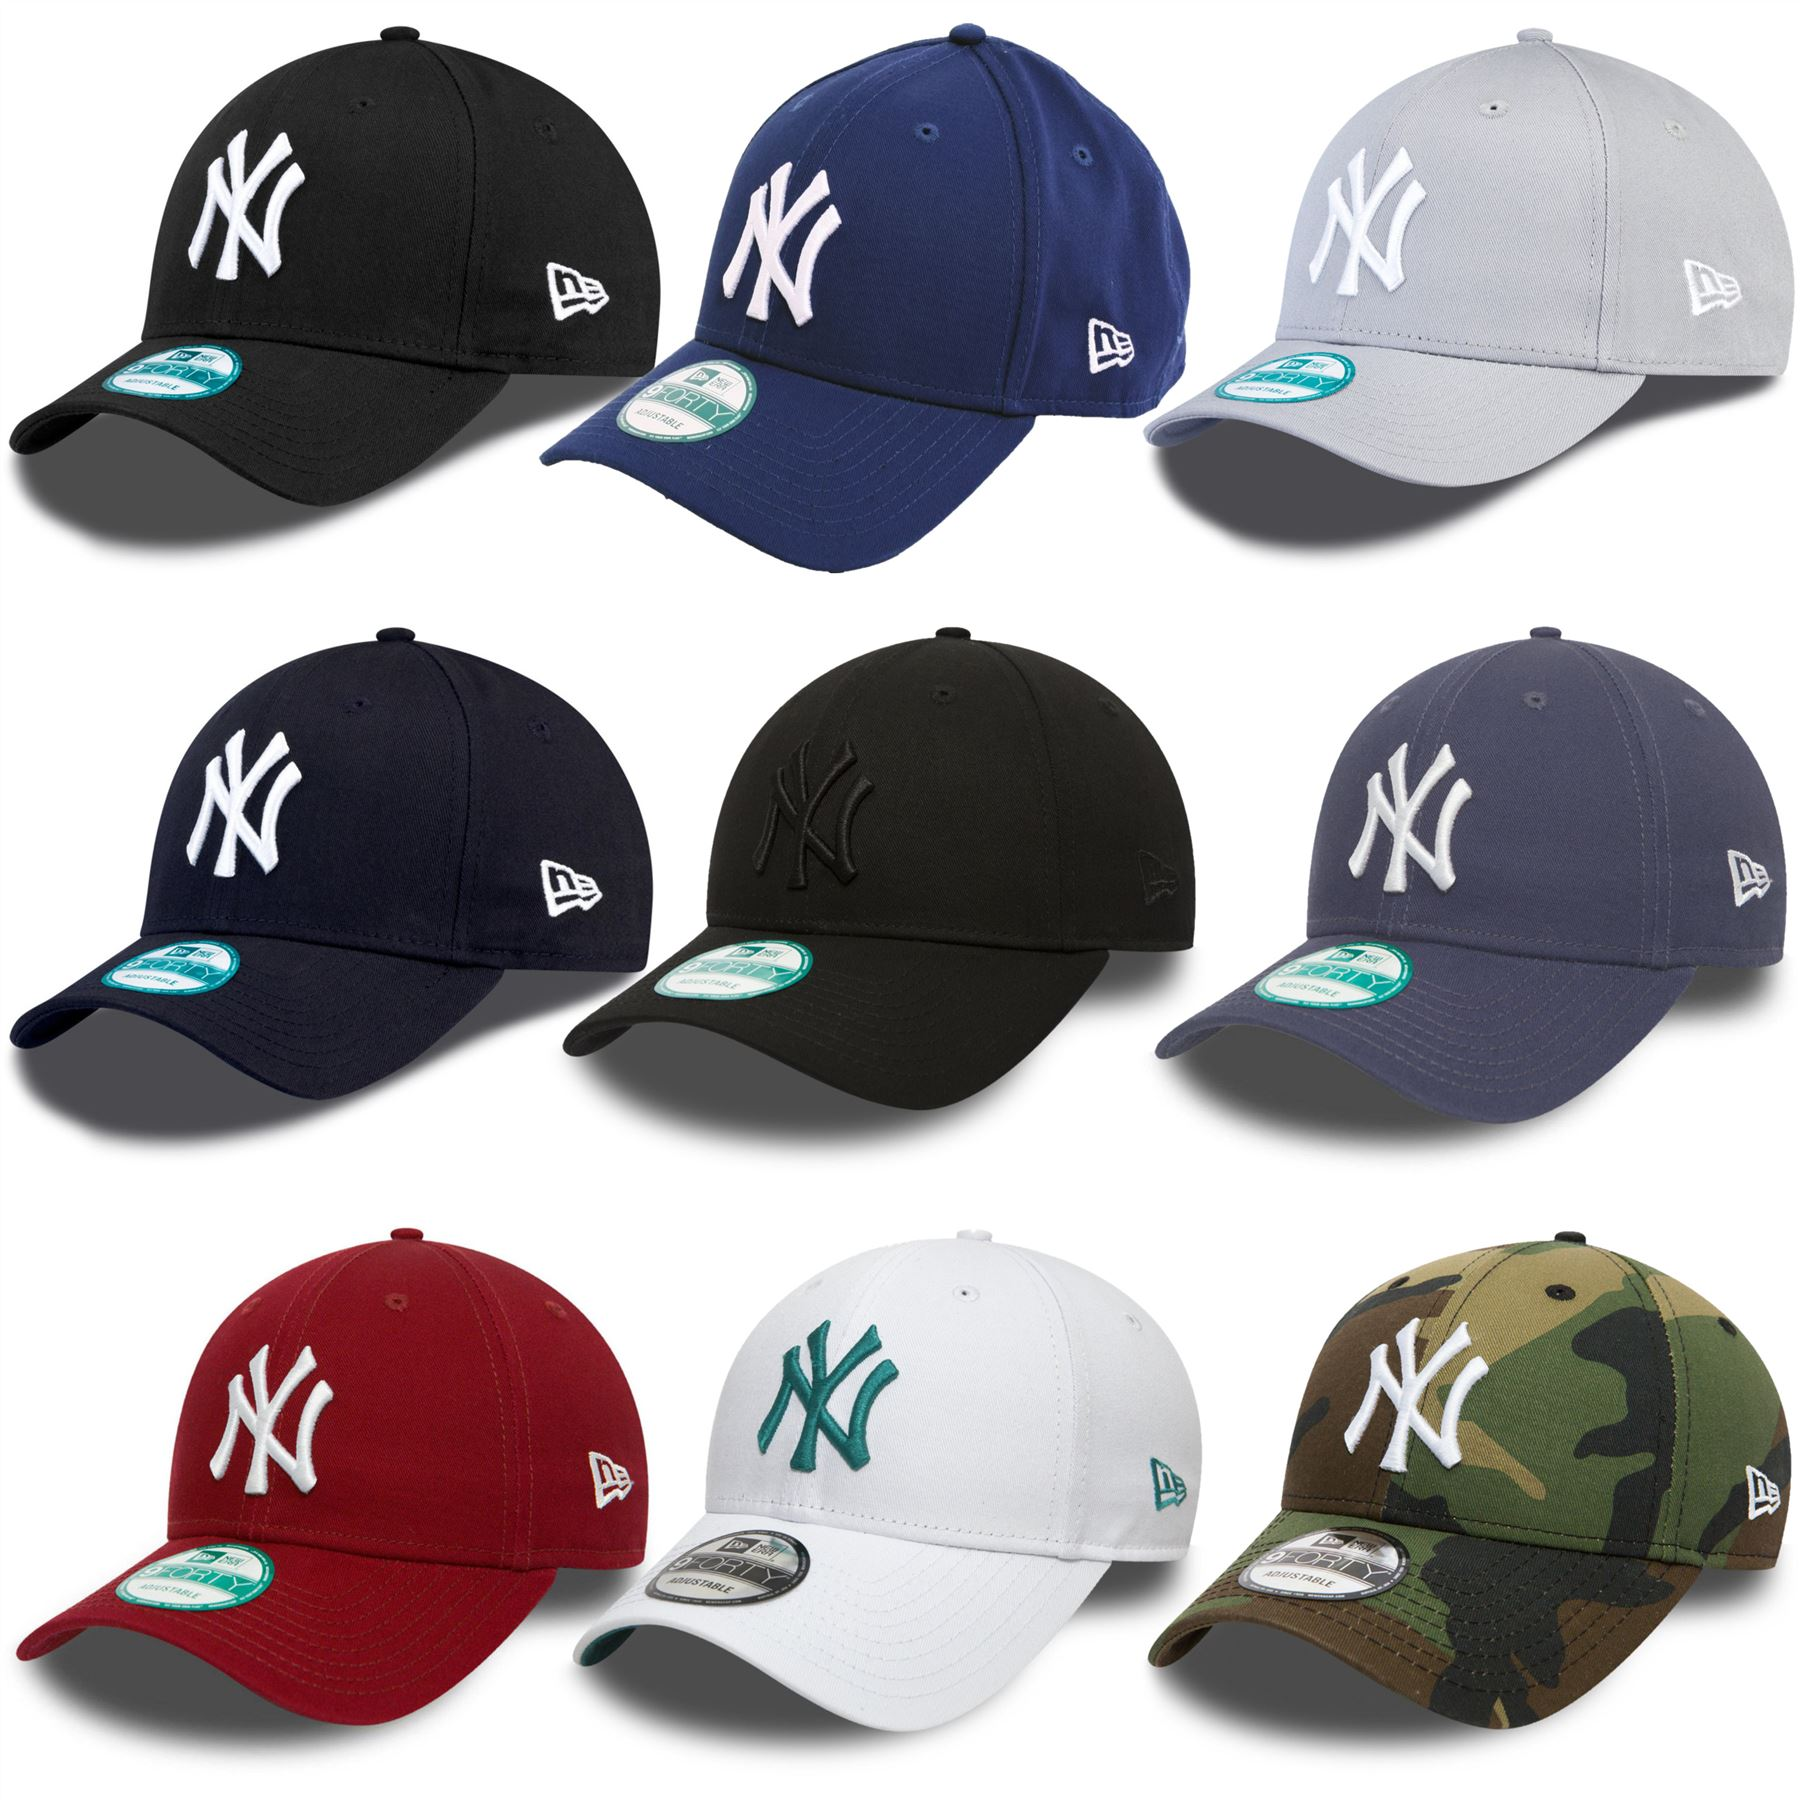 Details about New Era 9FORTY New York Yankees Adjustable Baseball Cap -  Black 65f5c556d93